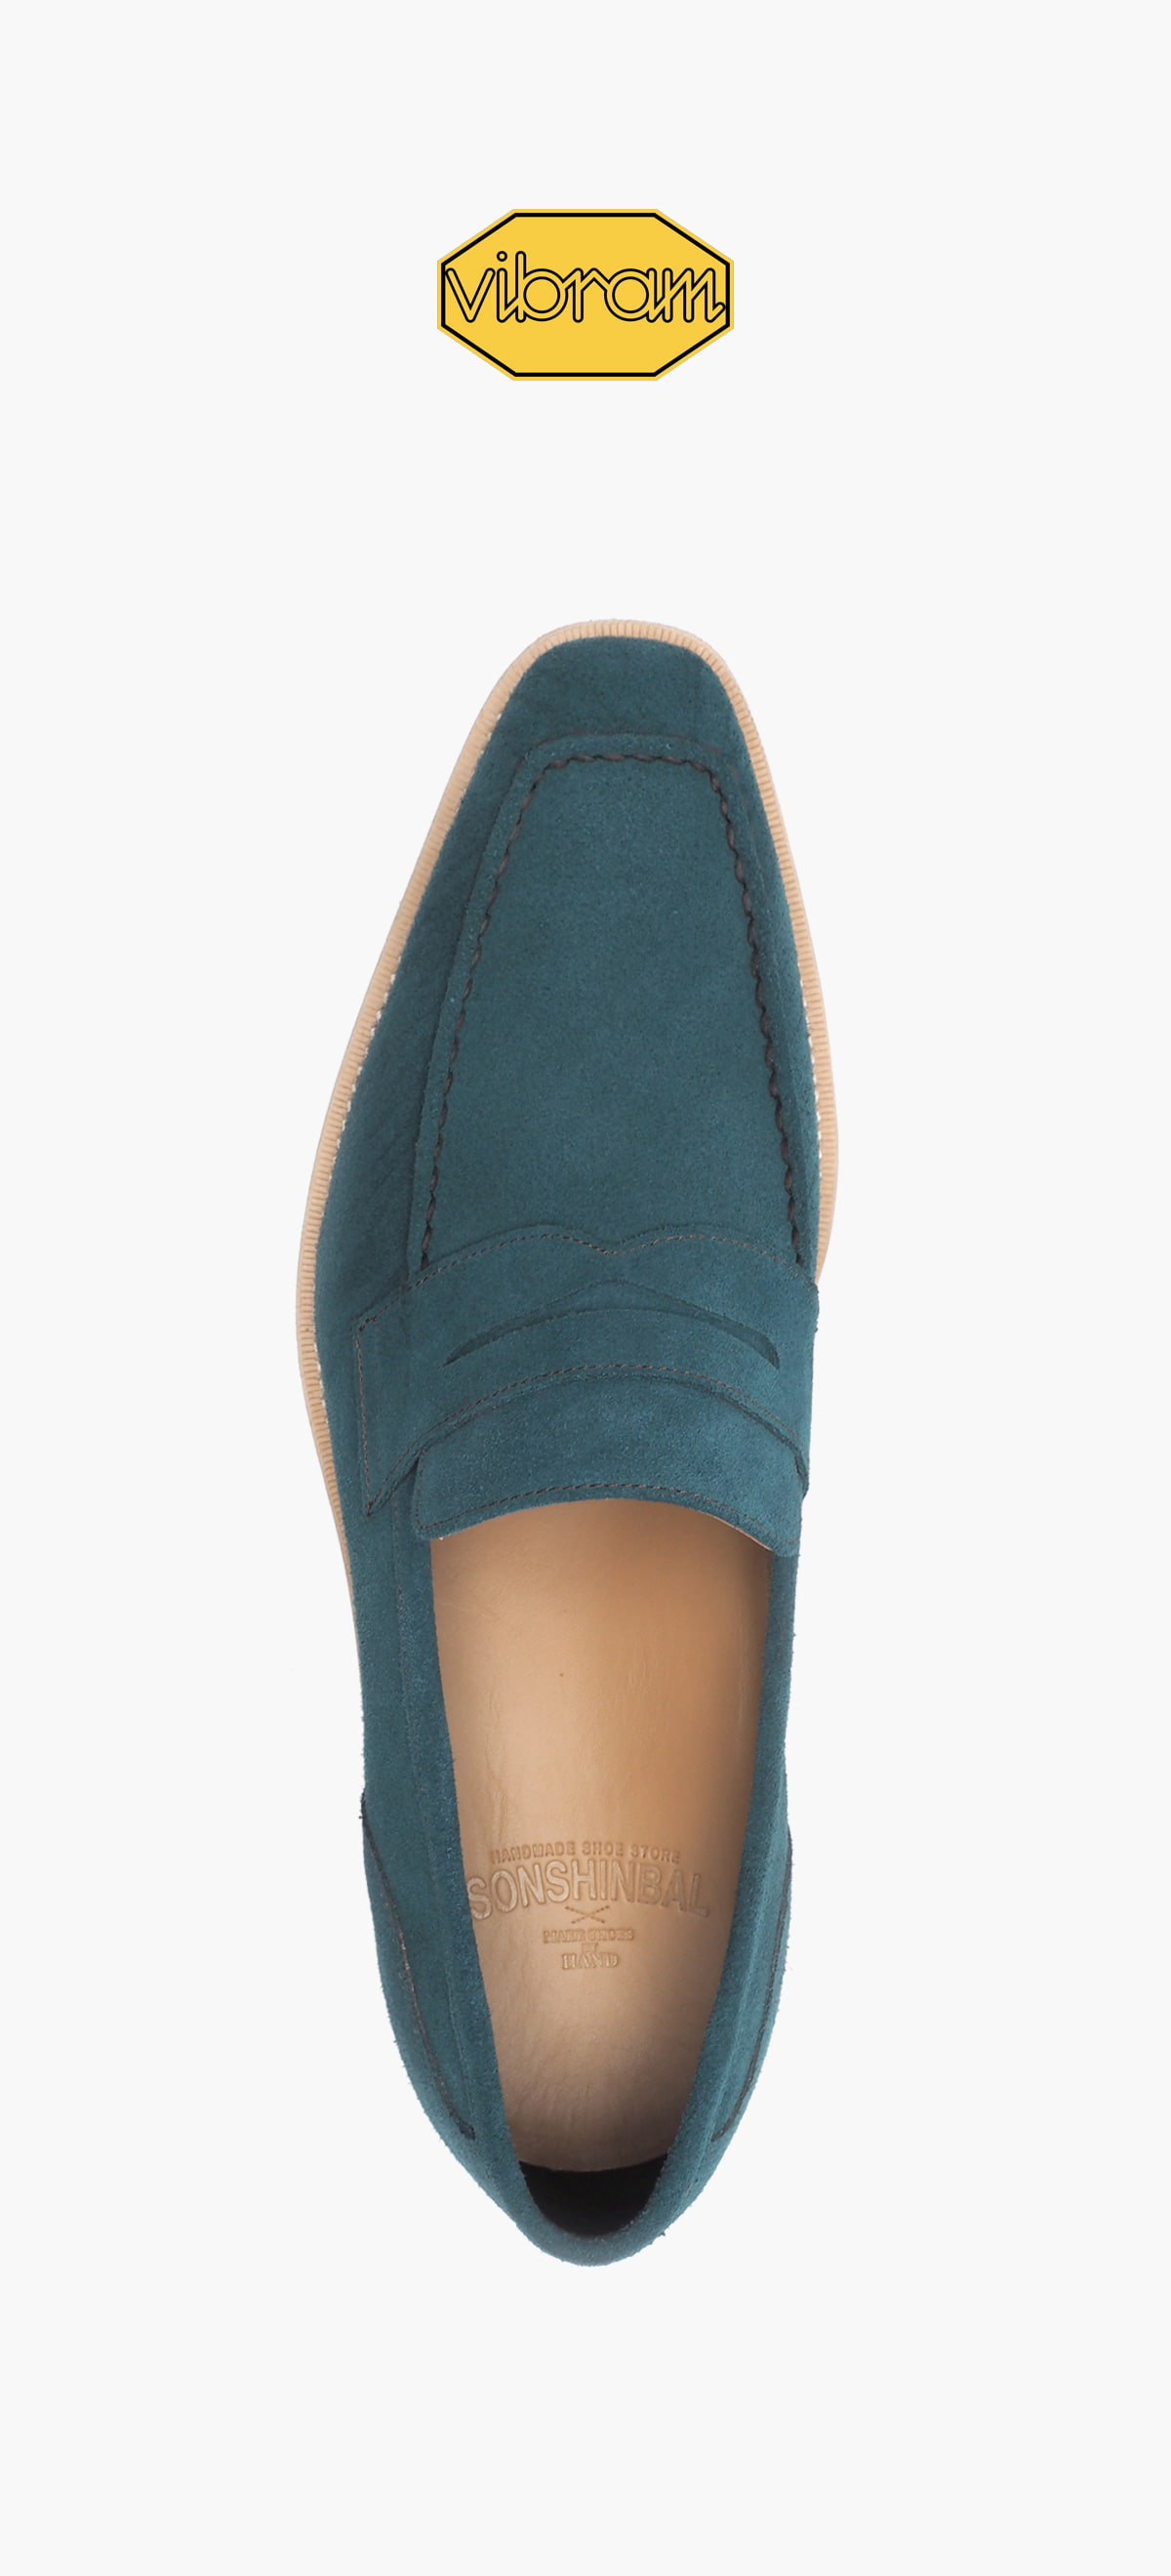 Penny Loafer 2026-05 Emerald Suede